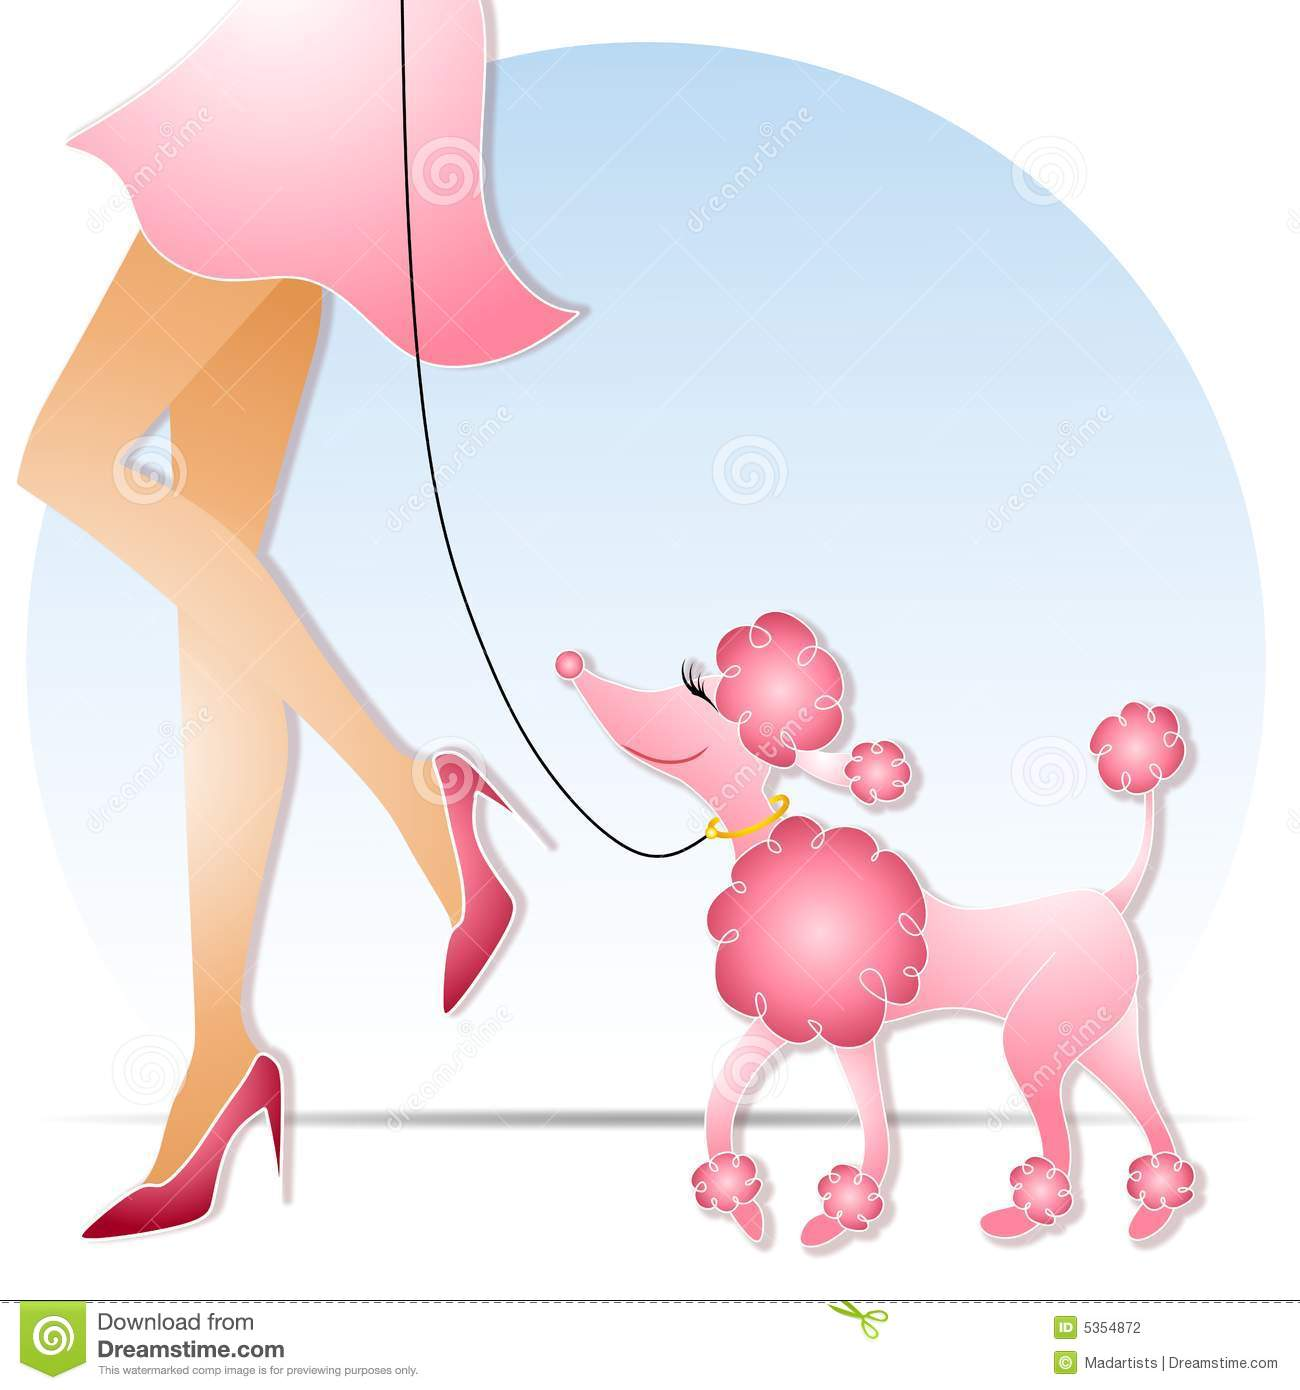 An illustration featuring a woman walking a pink poodle with fluffy ...